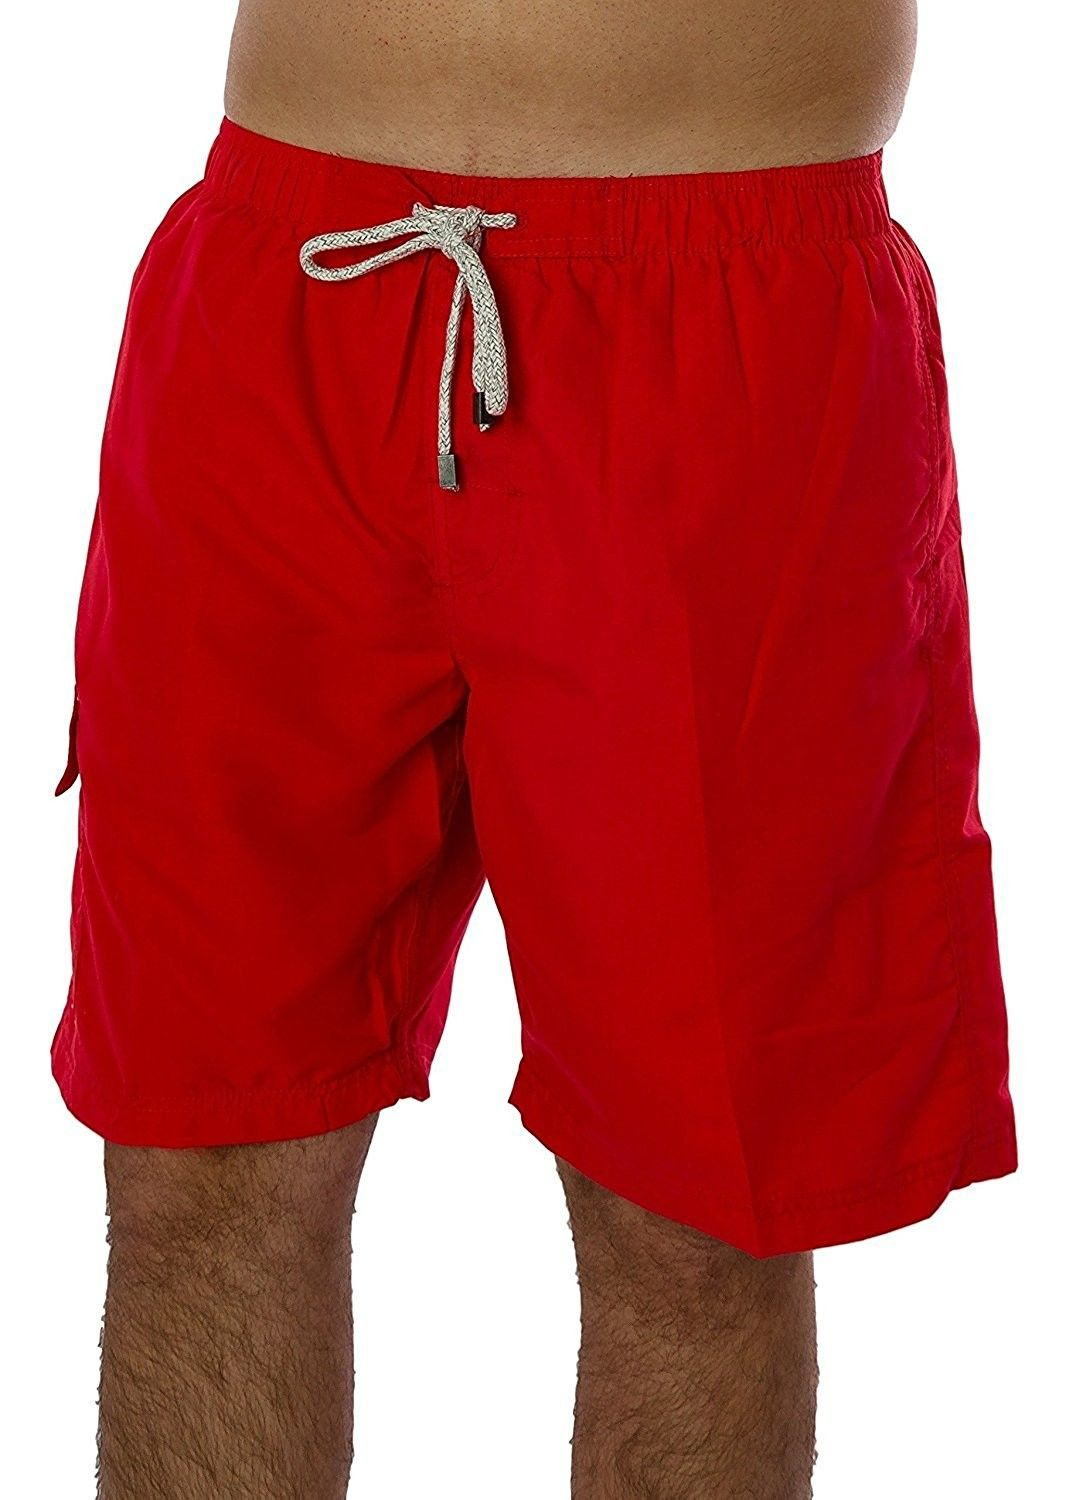 daee365014 Men's Clothing, Swim, Trunks, Men's Solid Color Swimwear 100% Polyester  Quick Dry Board Shorts Bathing Suit Surf Beach Swim Trunks - Red -  C617YGZRQN3 #men ...